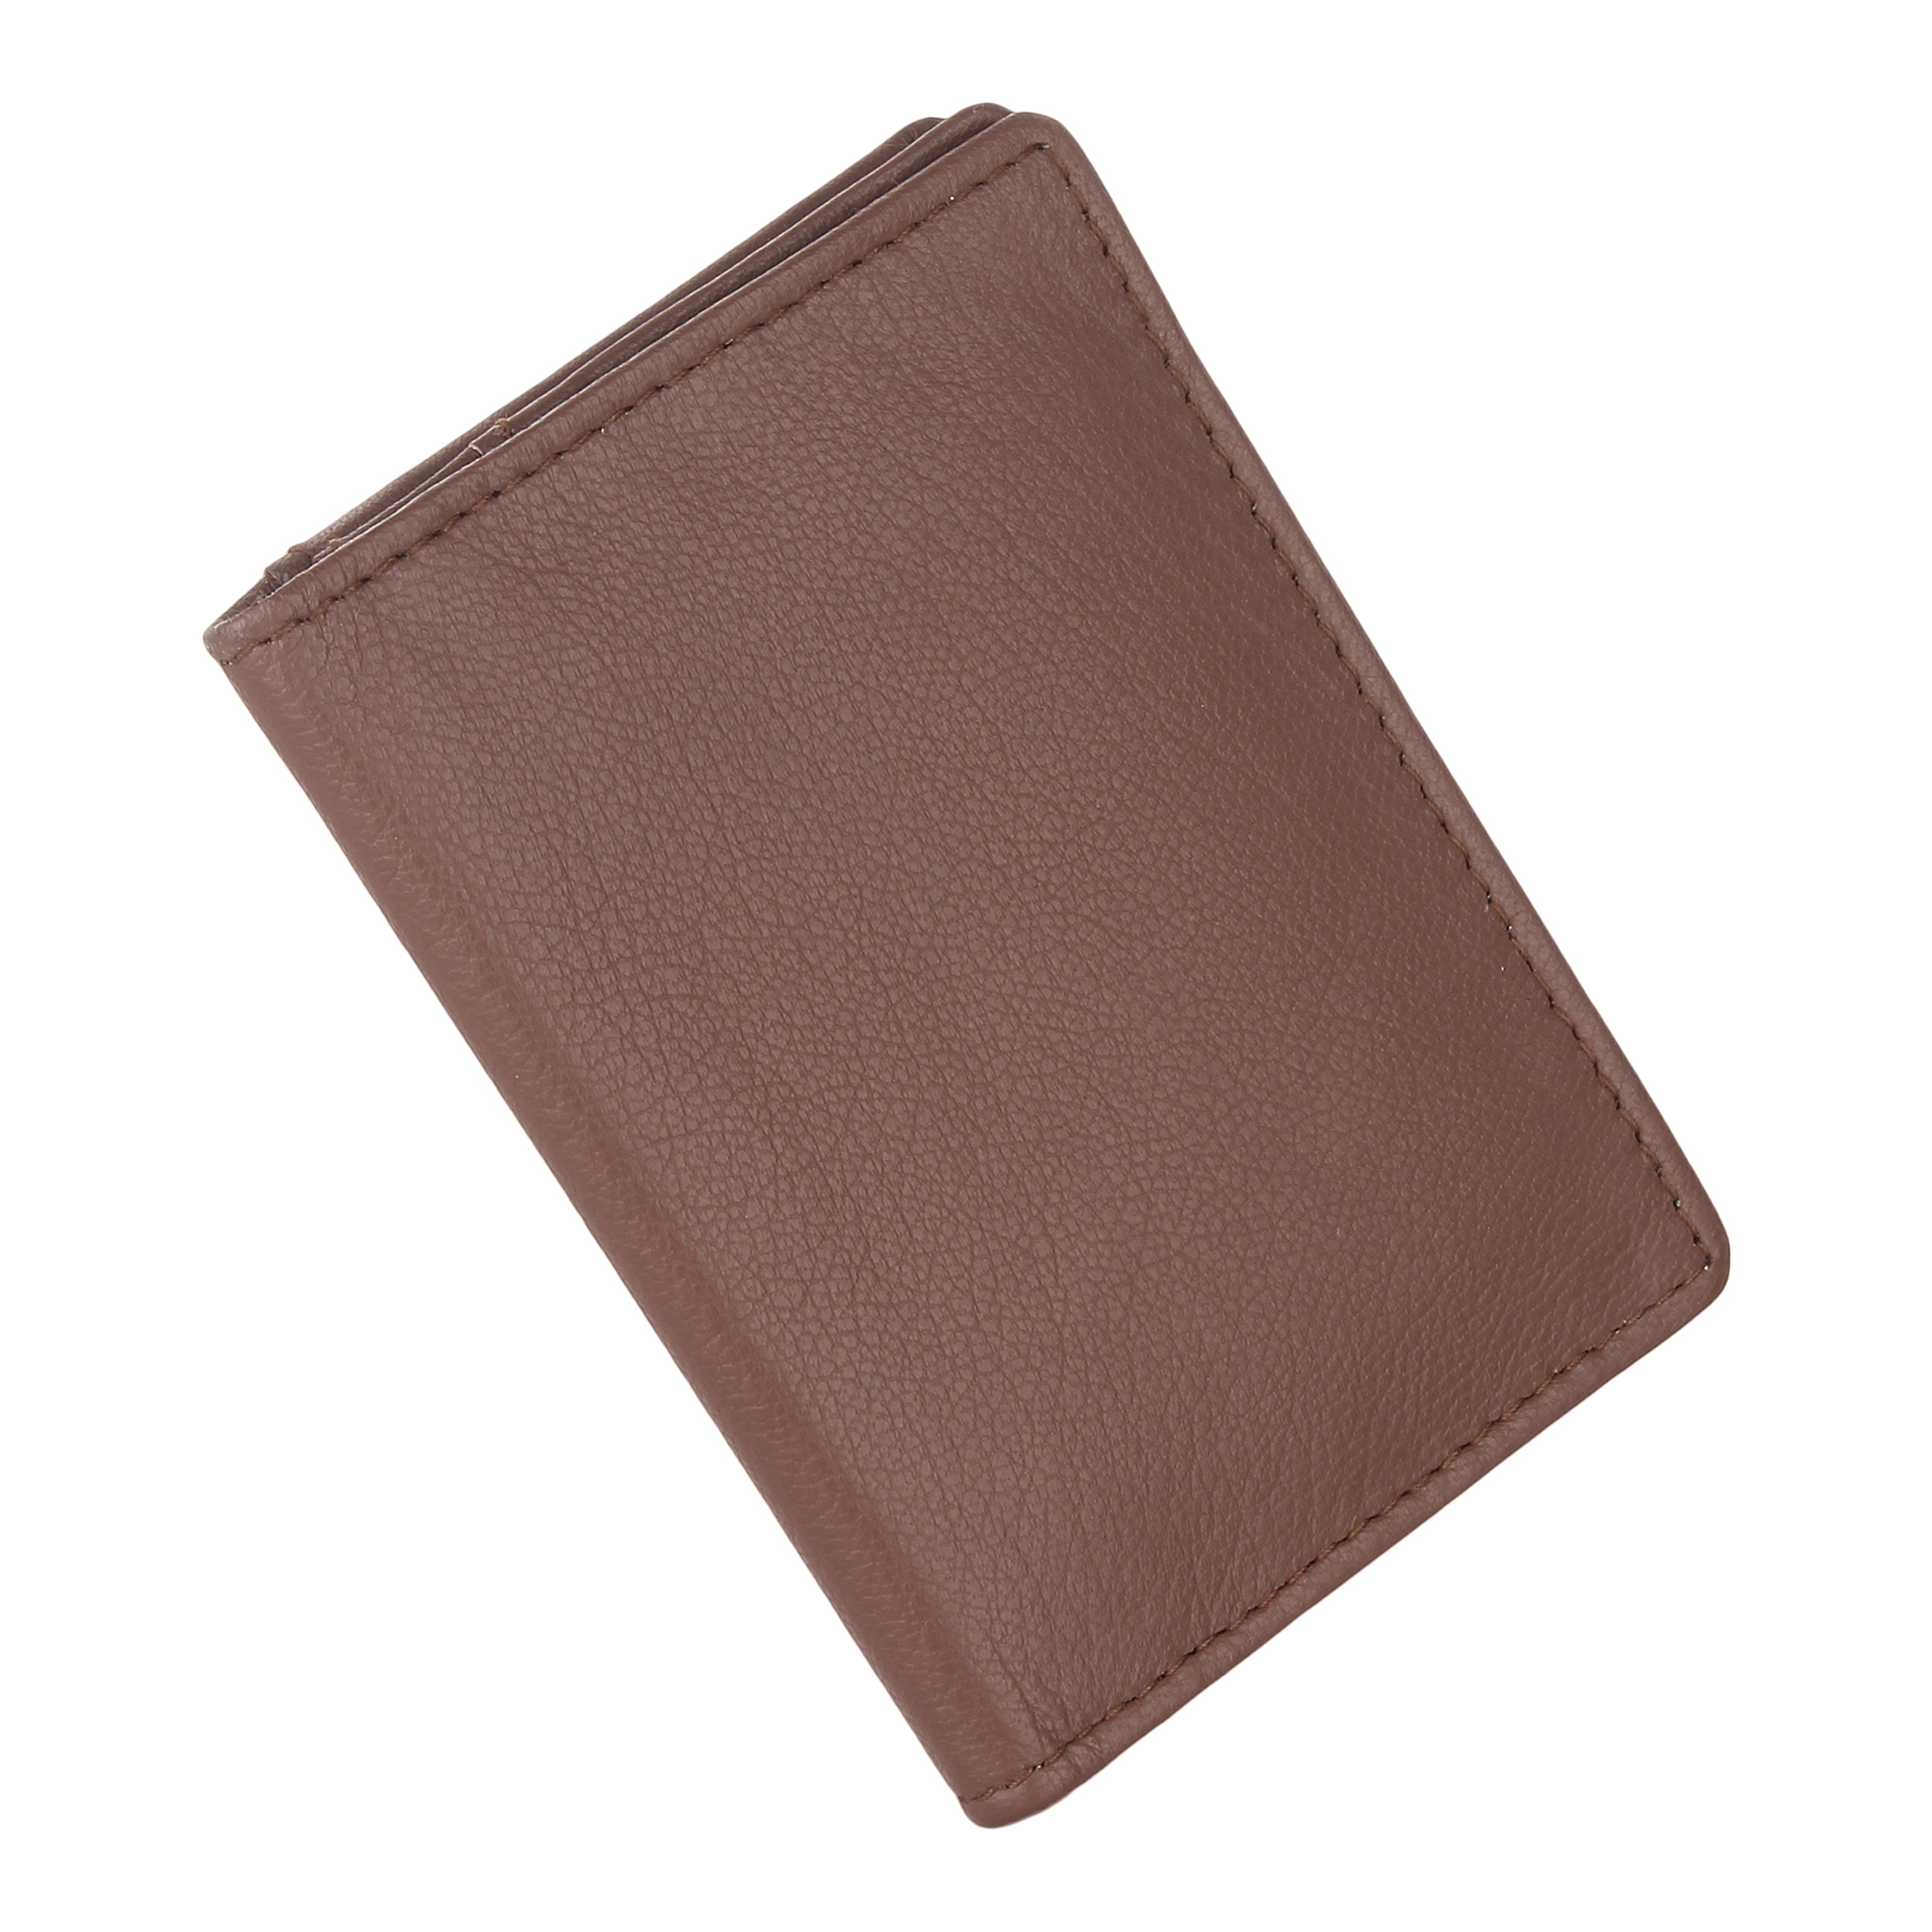 Leather Card Holder Wallet Manufacturers In Australia, Card Holder Wallet Suppliers In Australia, Card Holder Wallet Wholesalers In Australia, Card Holder Wallet Traders In Australia